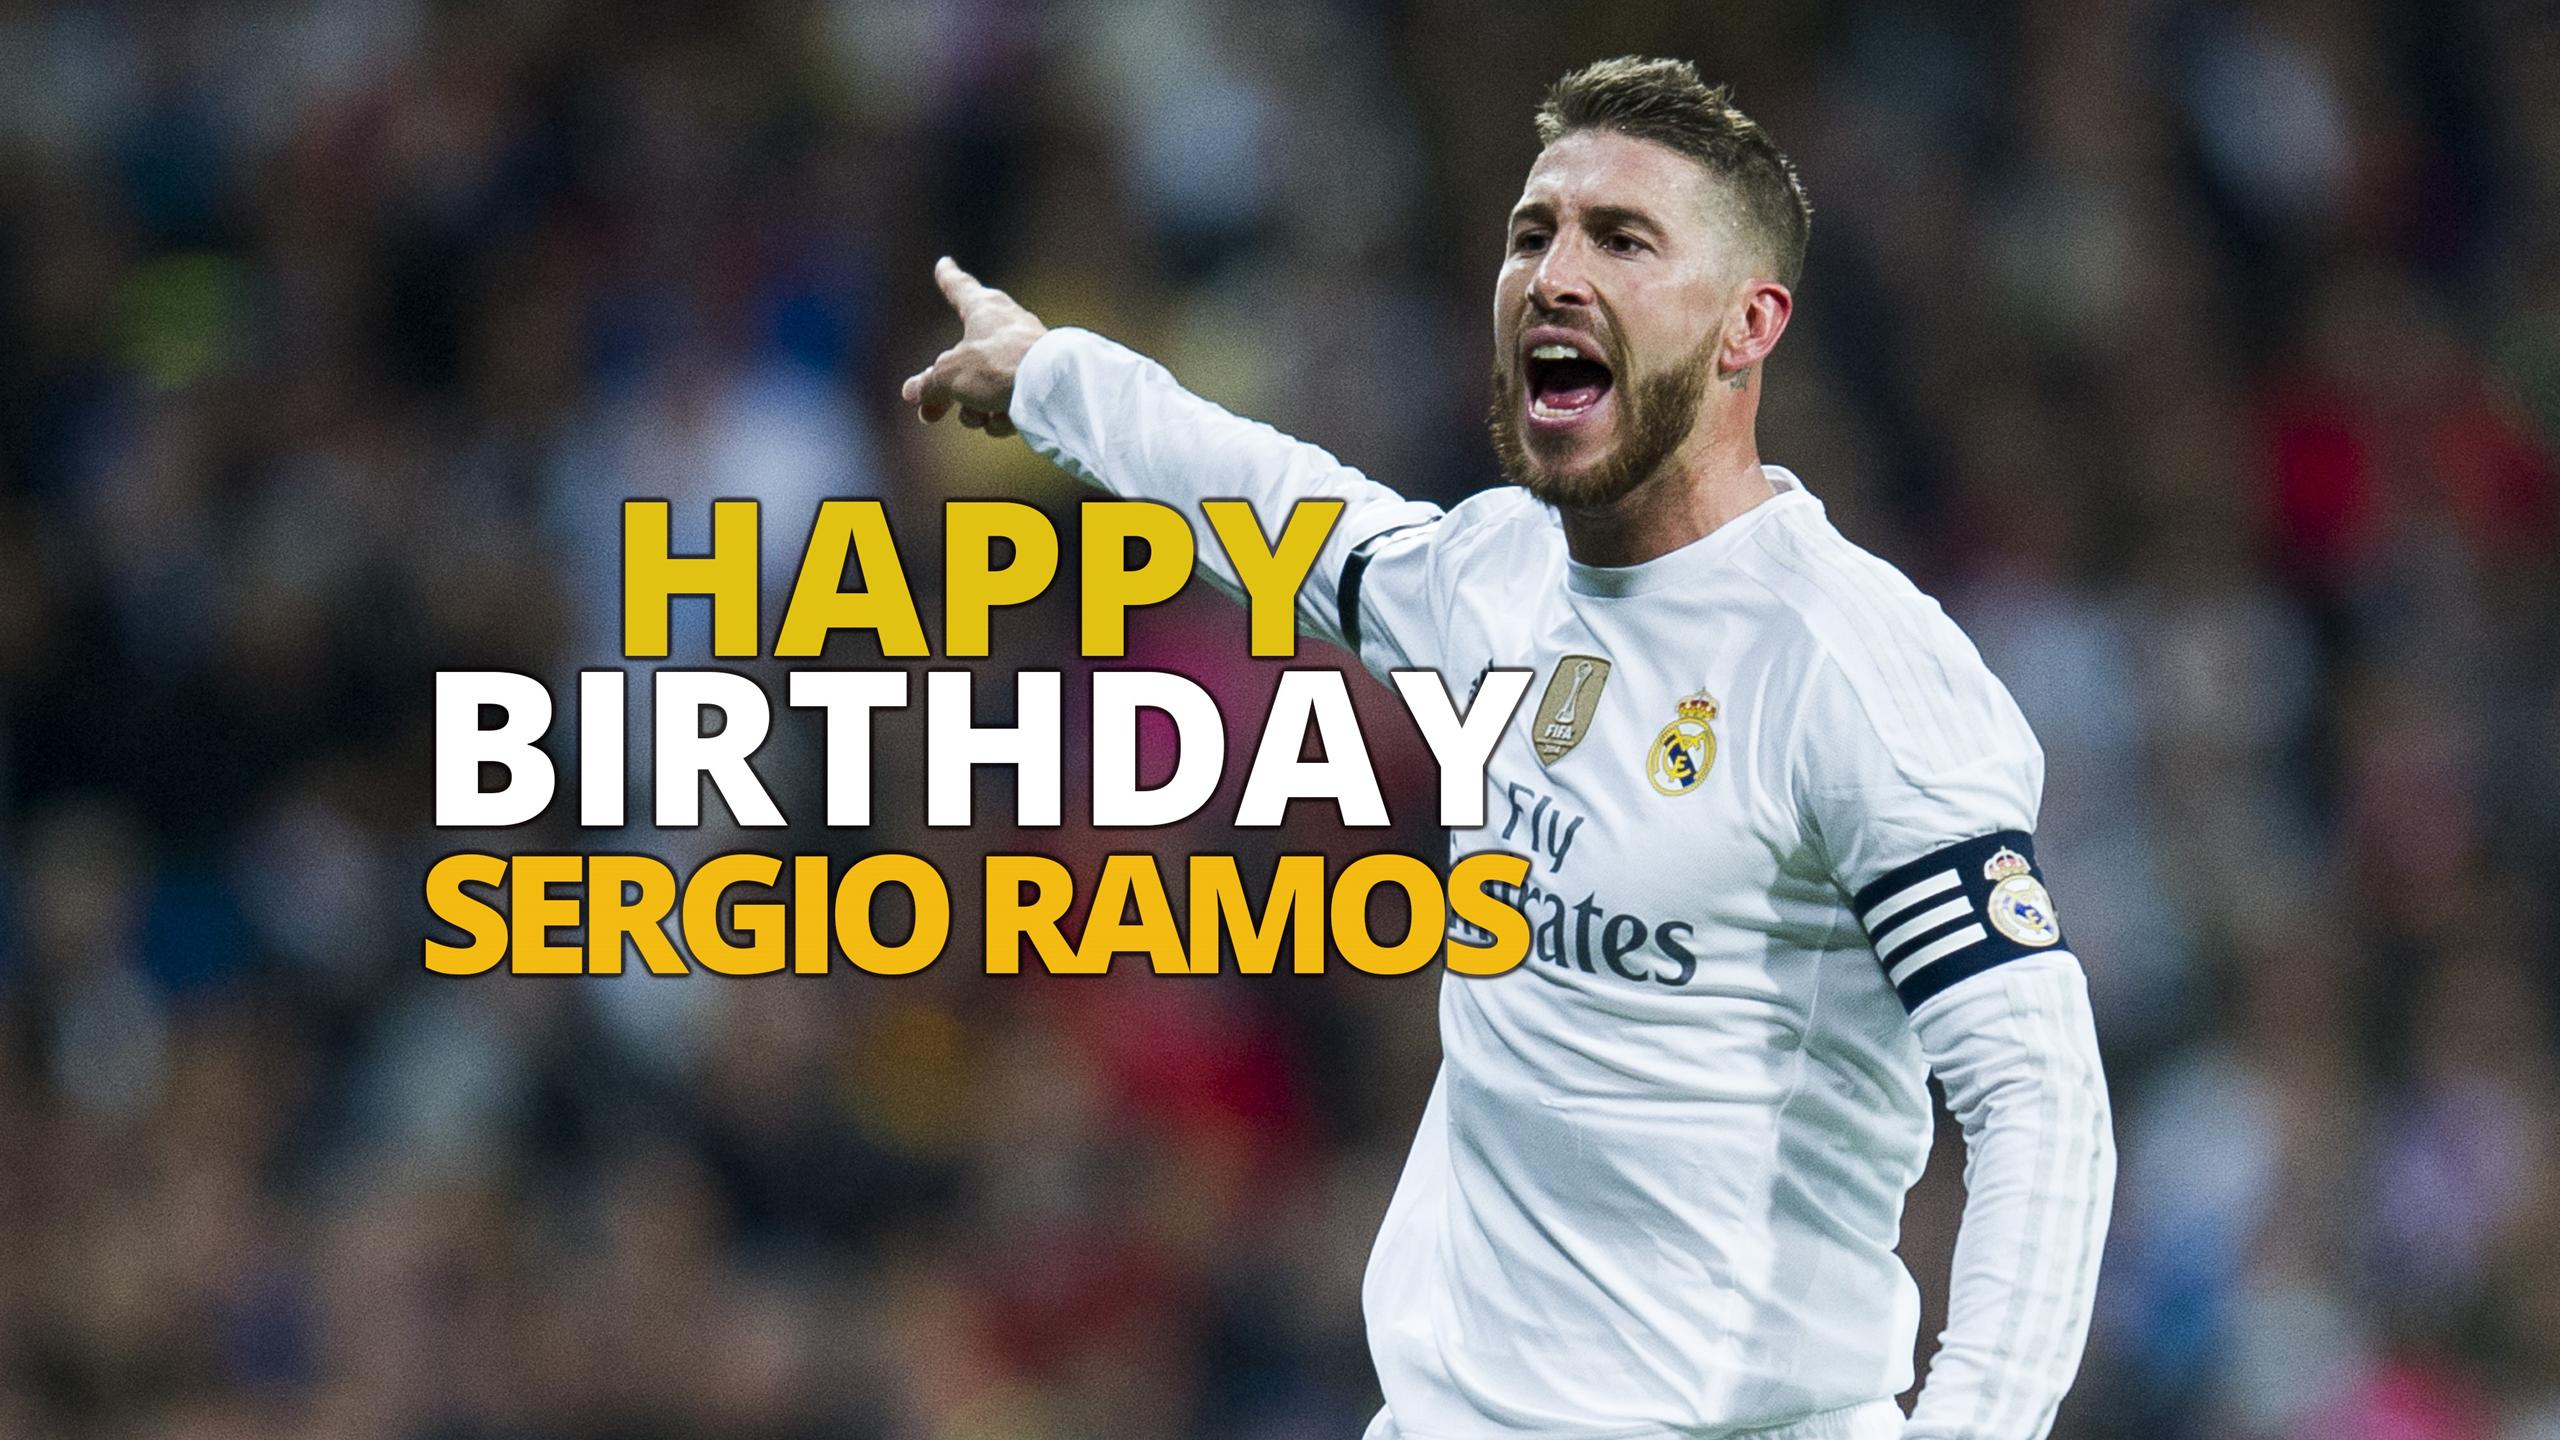 Sergio Ramos - Happy Birthday